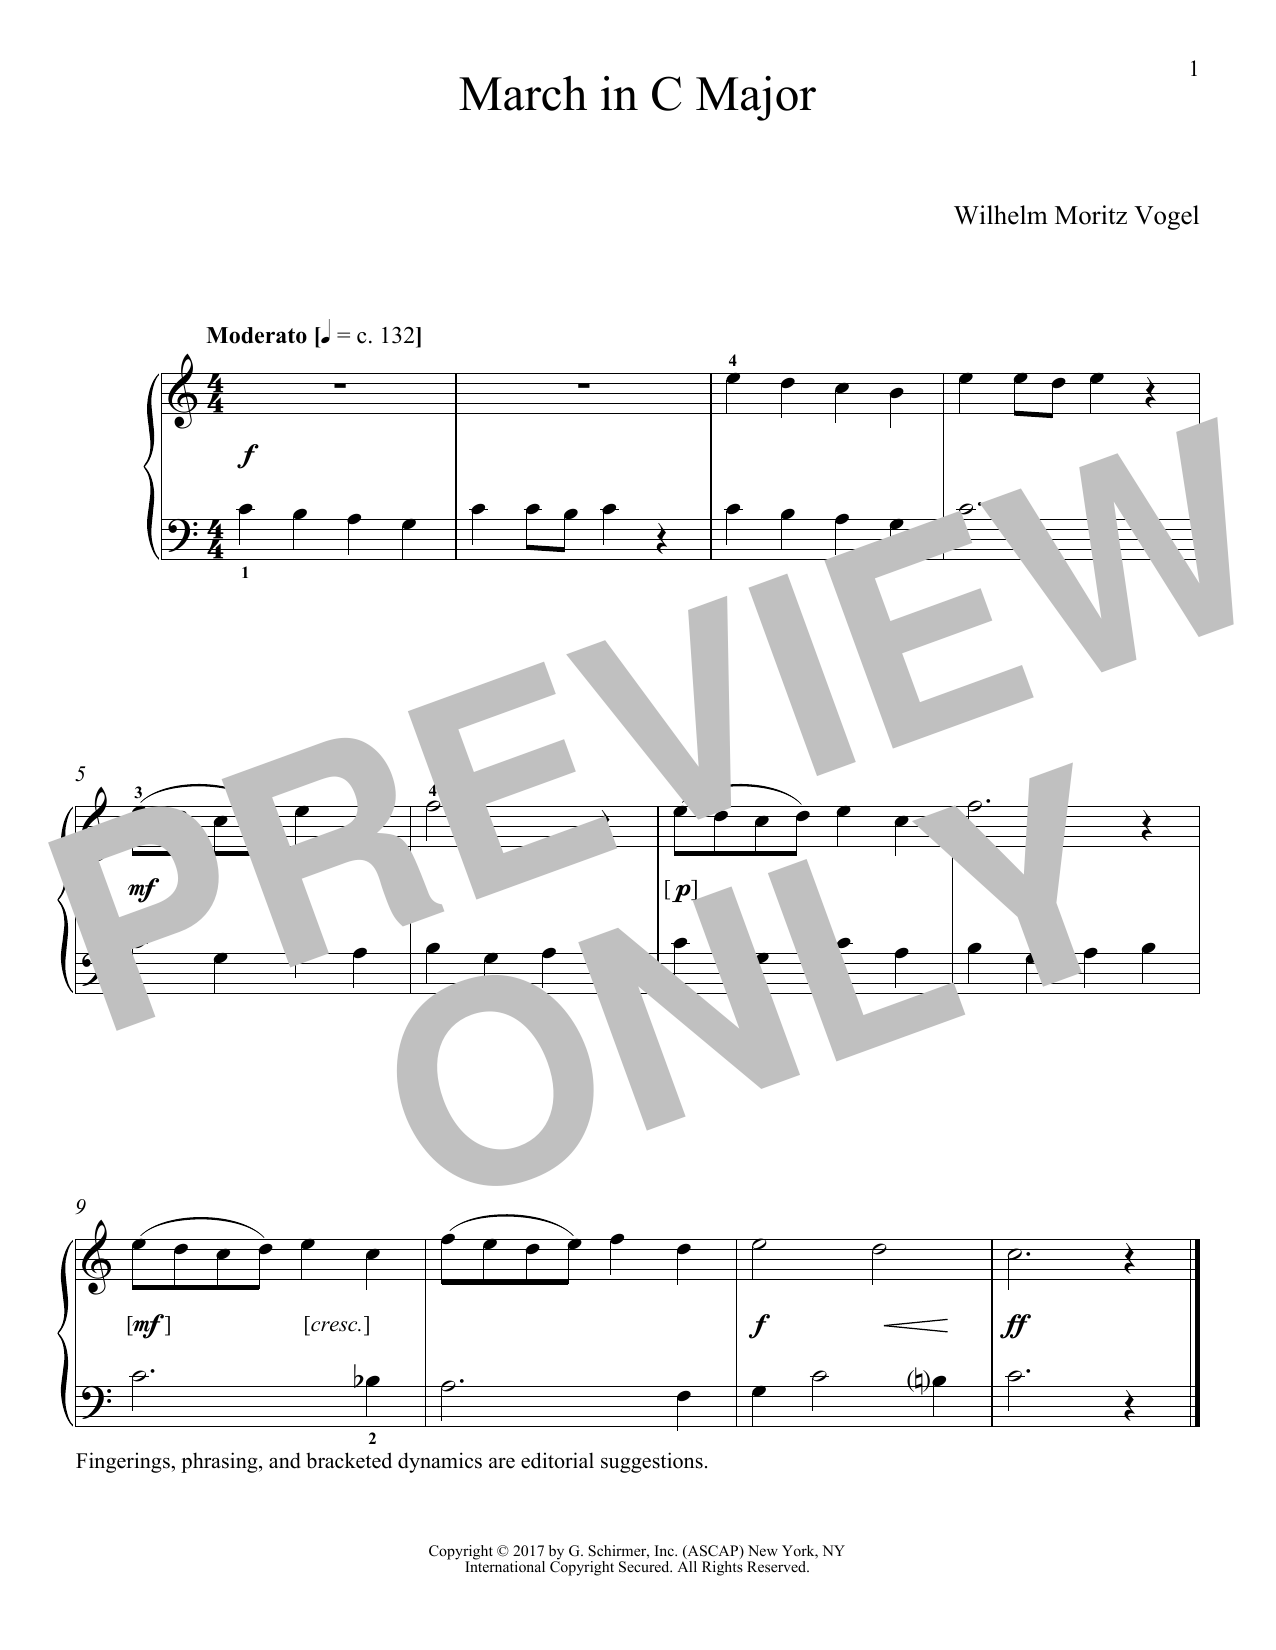 Moritz Vogel March In C Major sheet music notes and chords. Download Printable PDF.